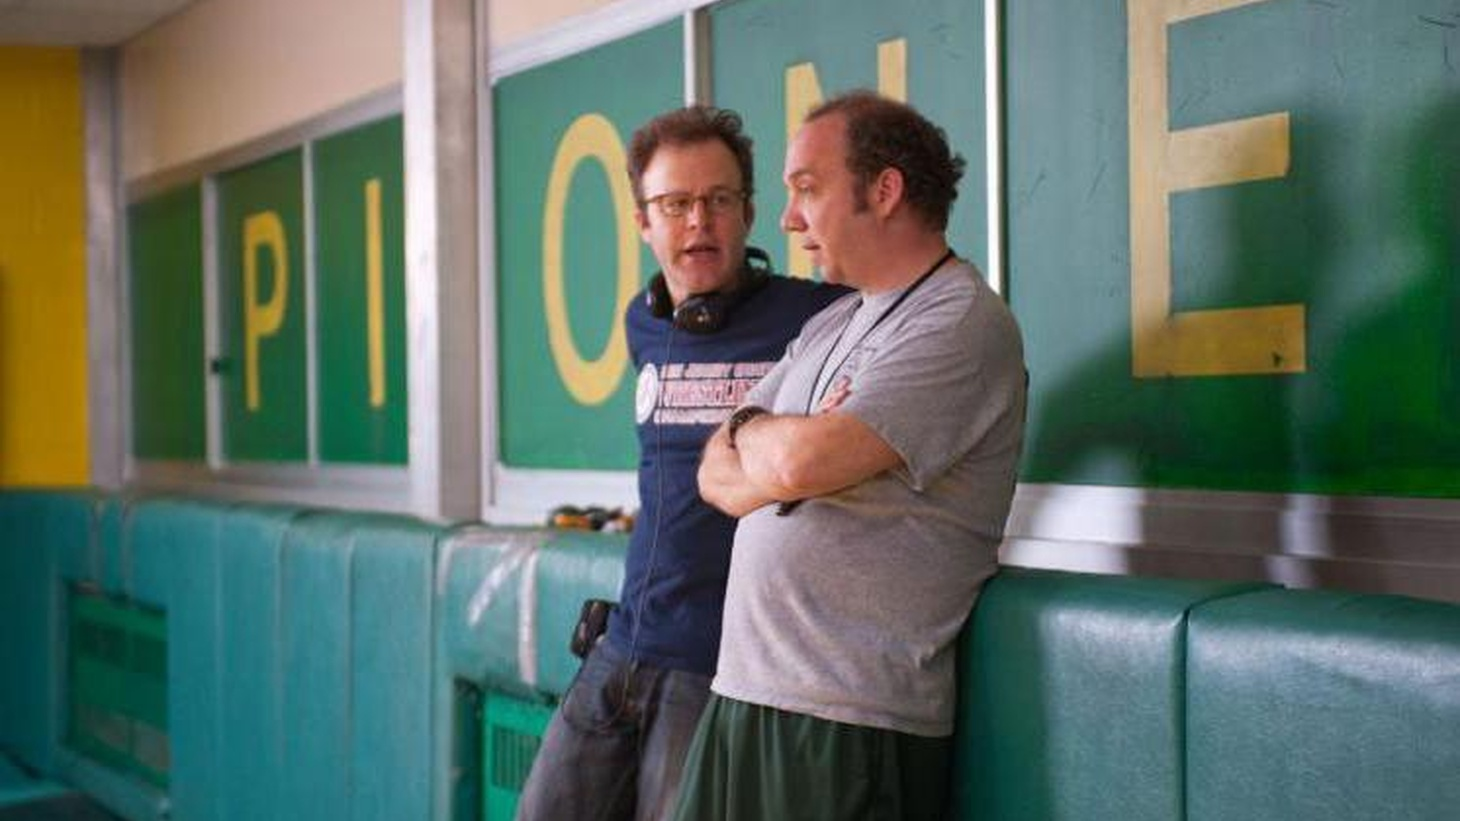 Not many people can claim credits from acting, to writing the animated film Up, to writing and directing The Station Agent and The Visitor. Tom McCarthy is just that guy. His newest film is Win Win.